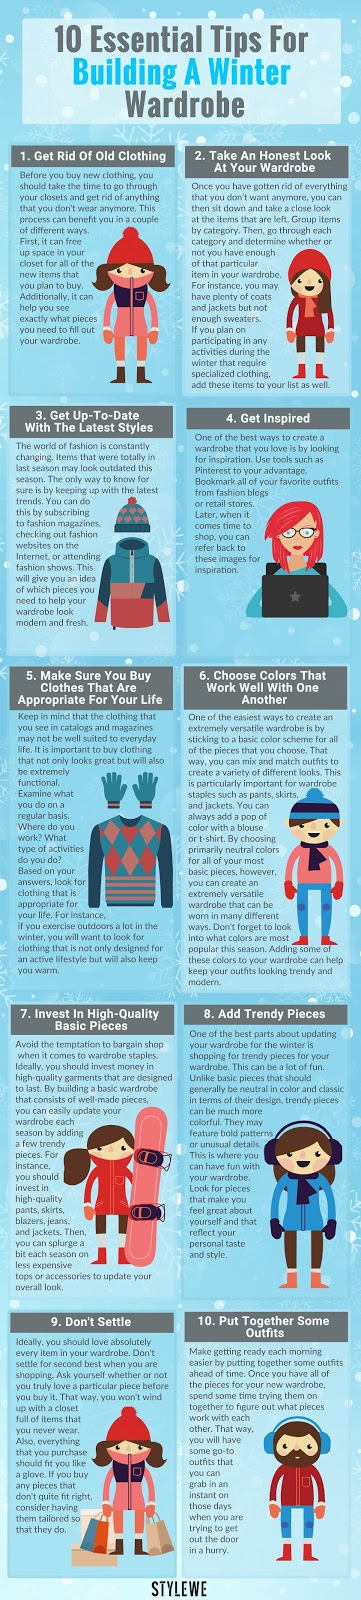 Fashion Tips for the Winter